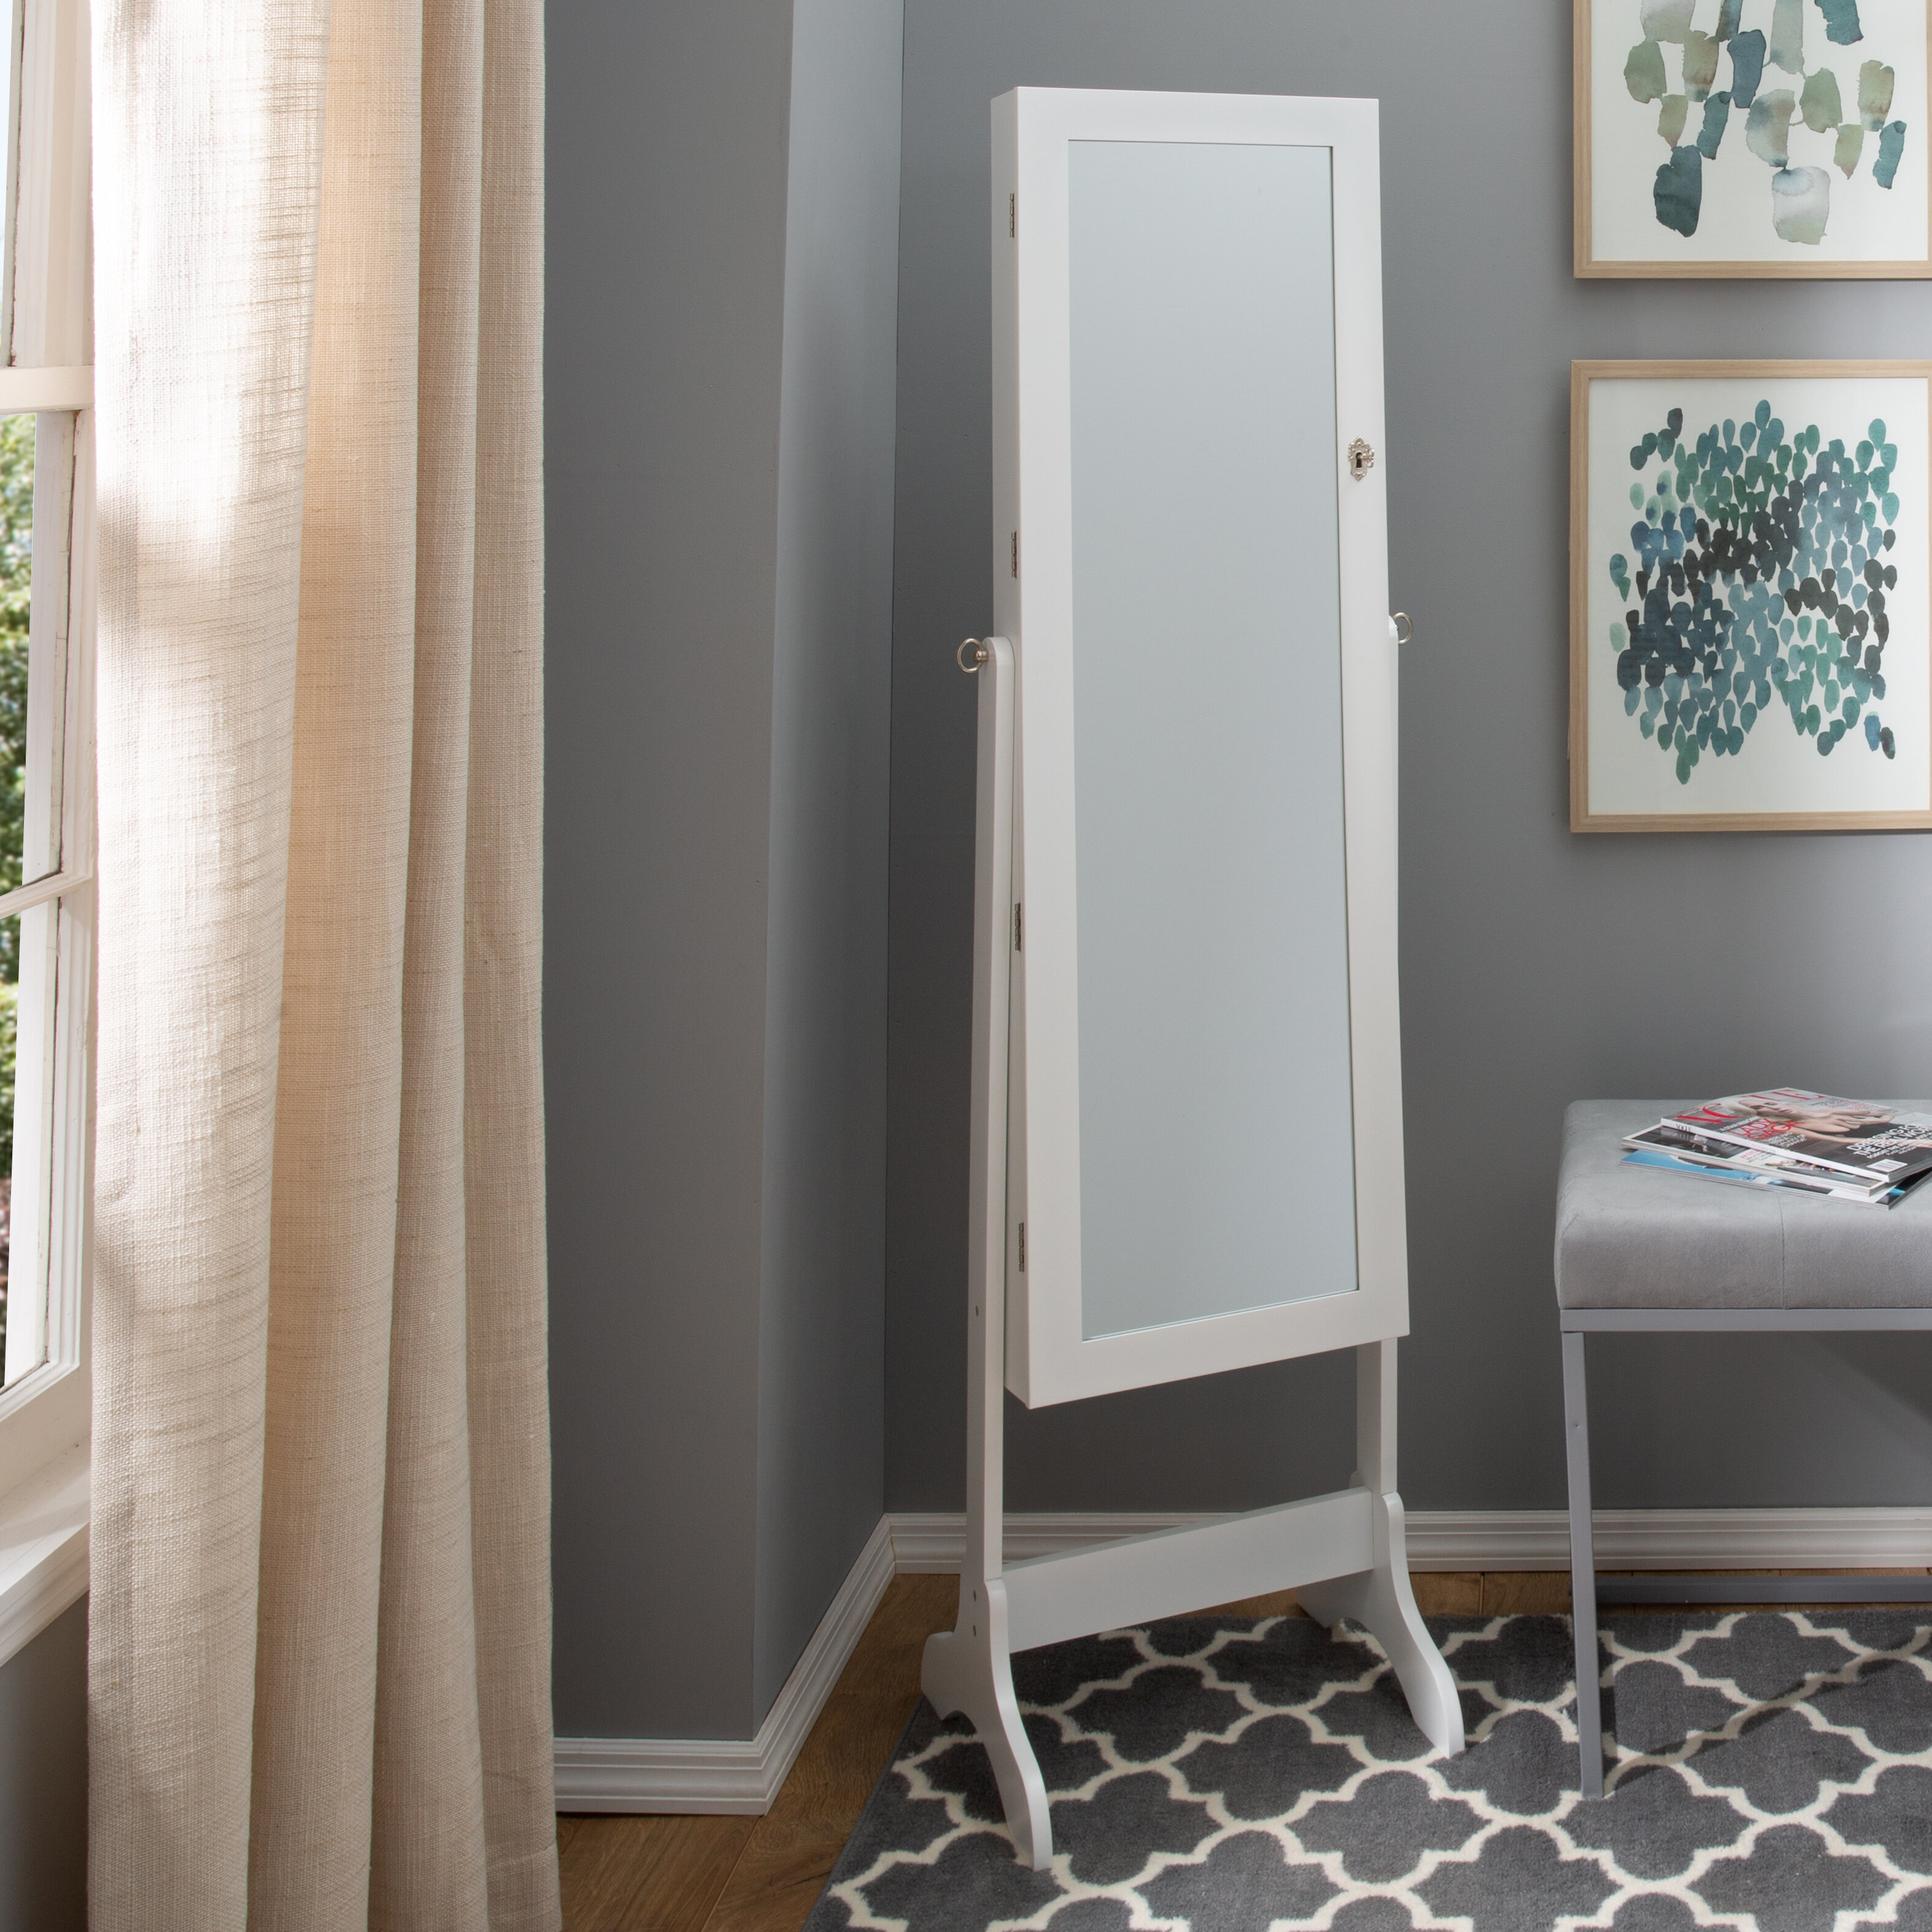 . Treadaway Free Standing Jewelry Armoire with Mirror